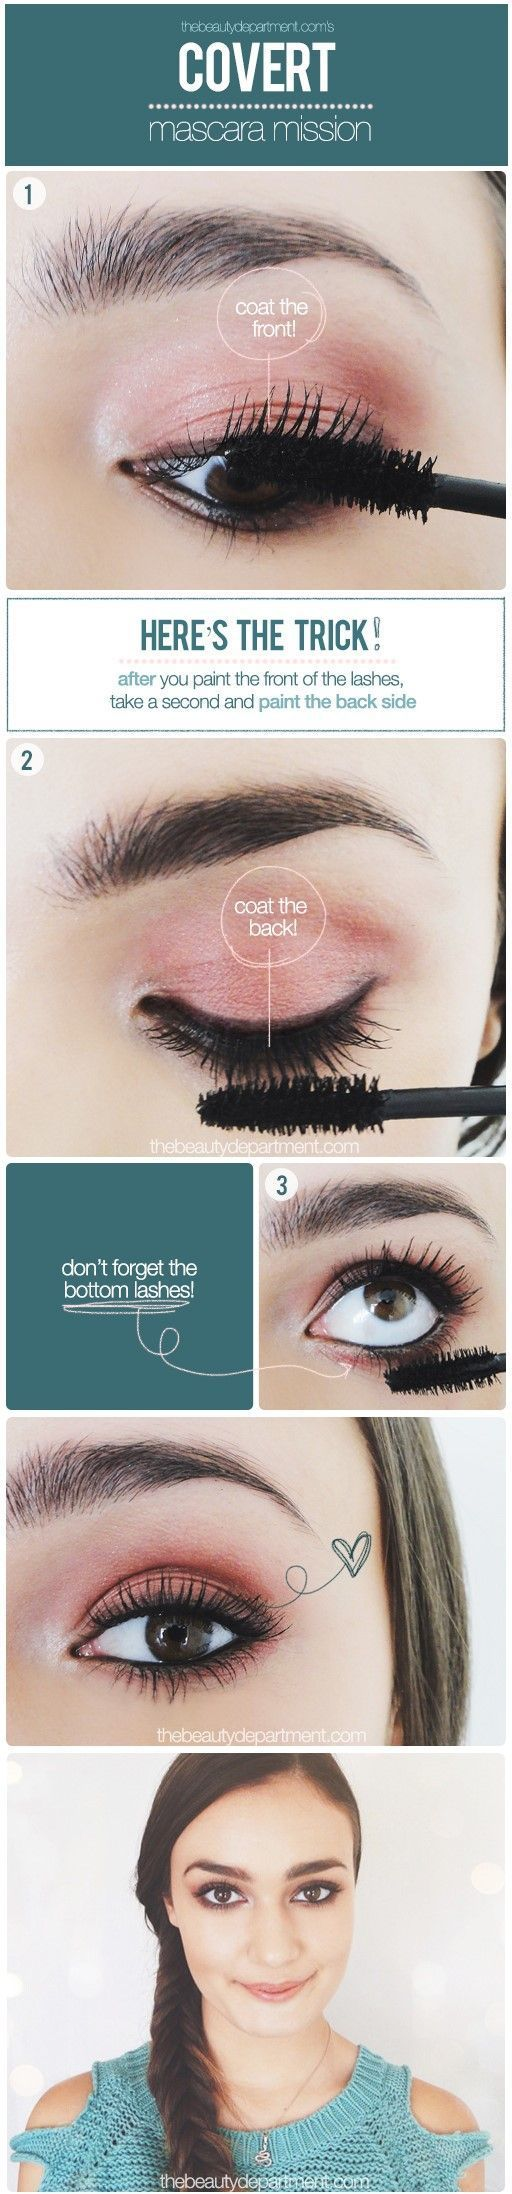 how to apply mascara the right way 1